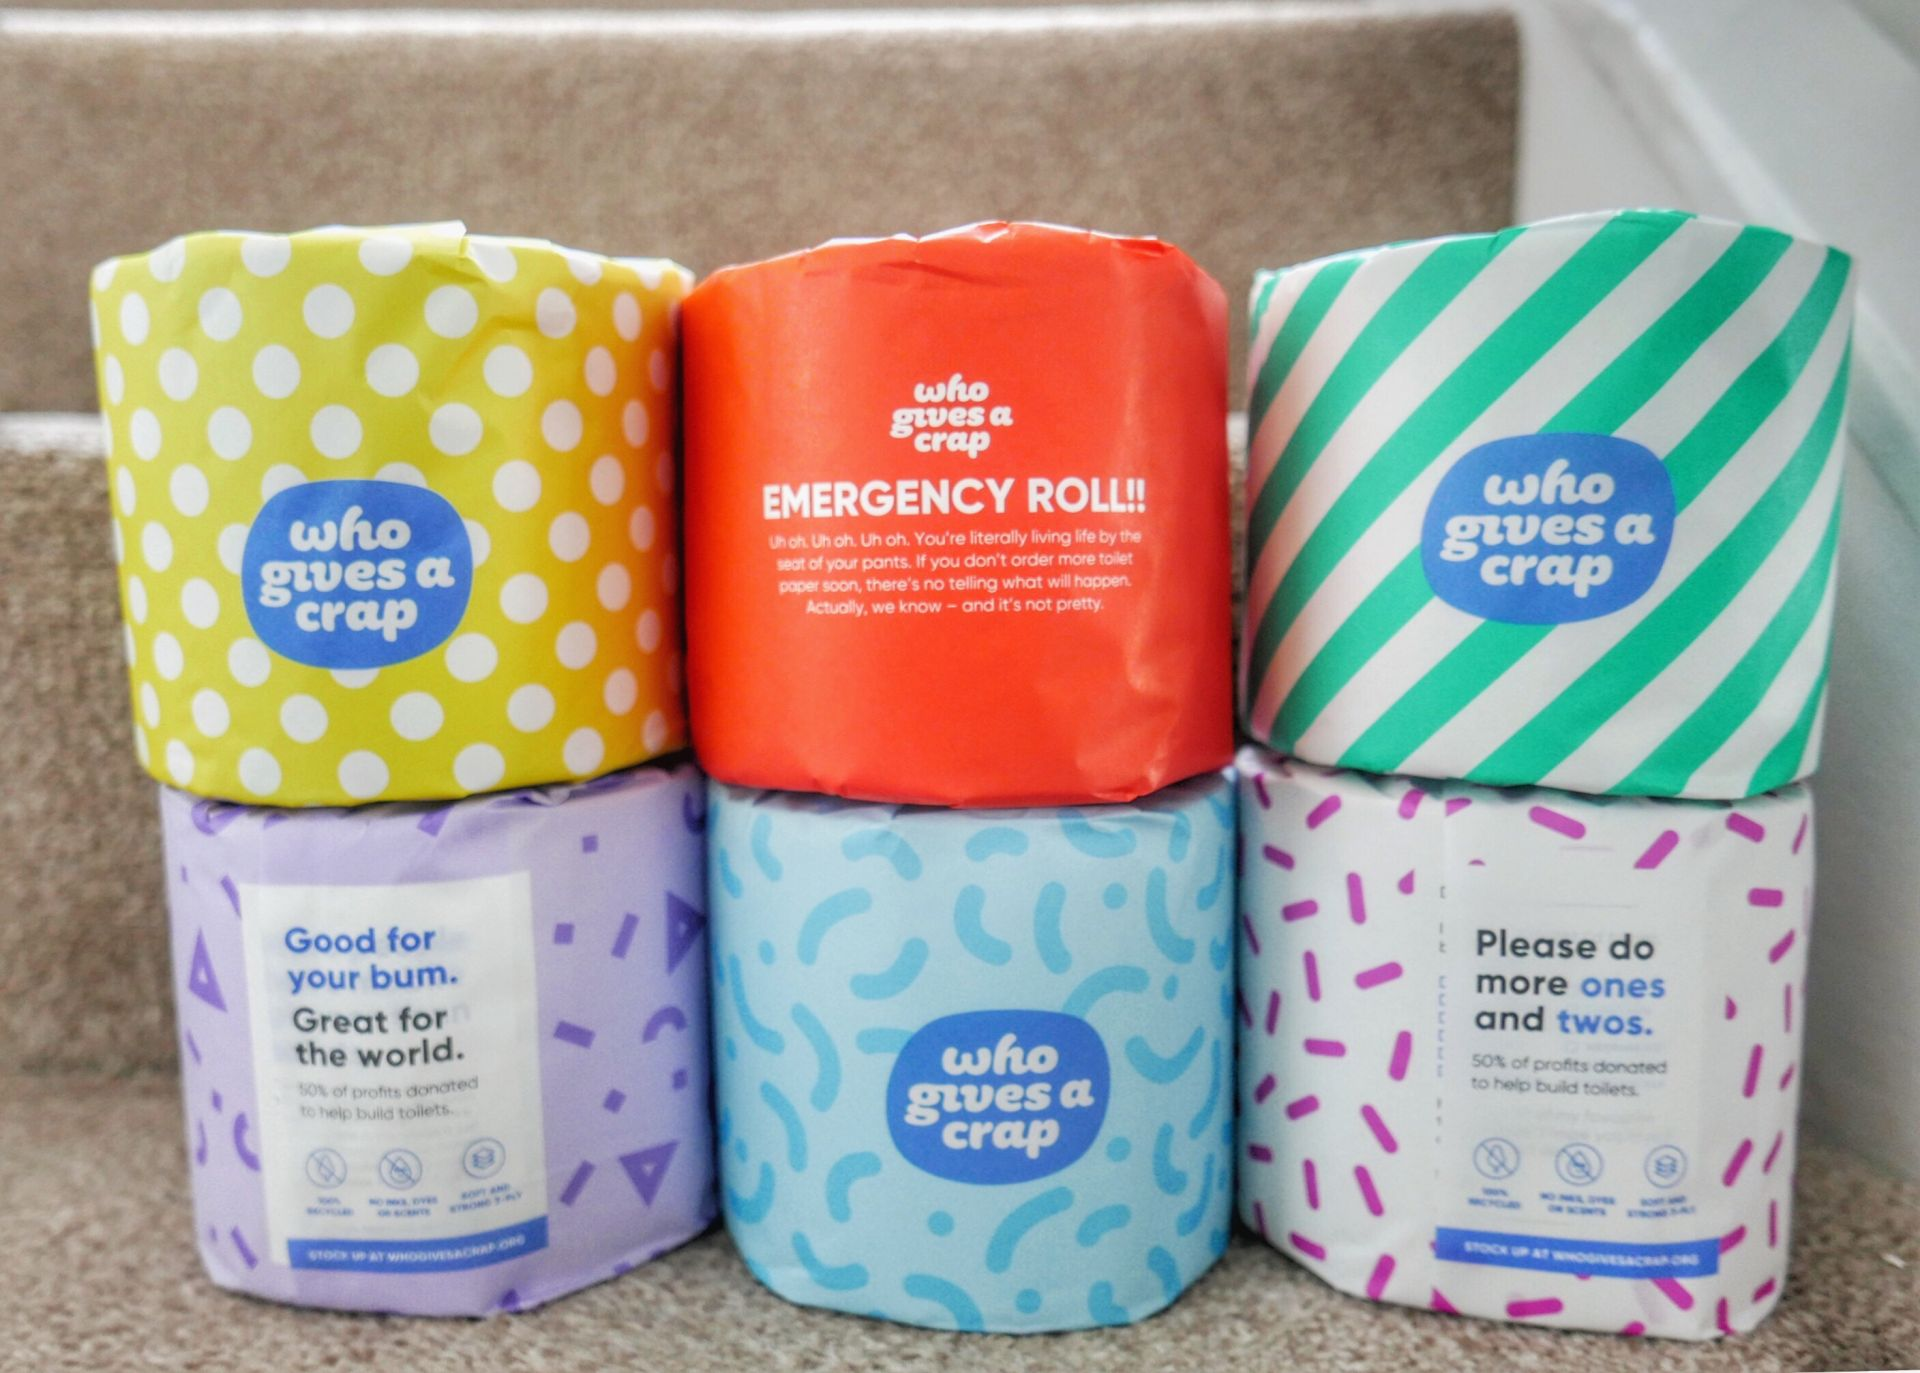 Six toilet rolls in colourful paper